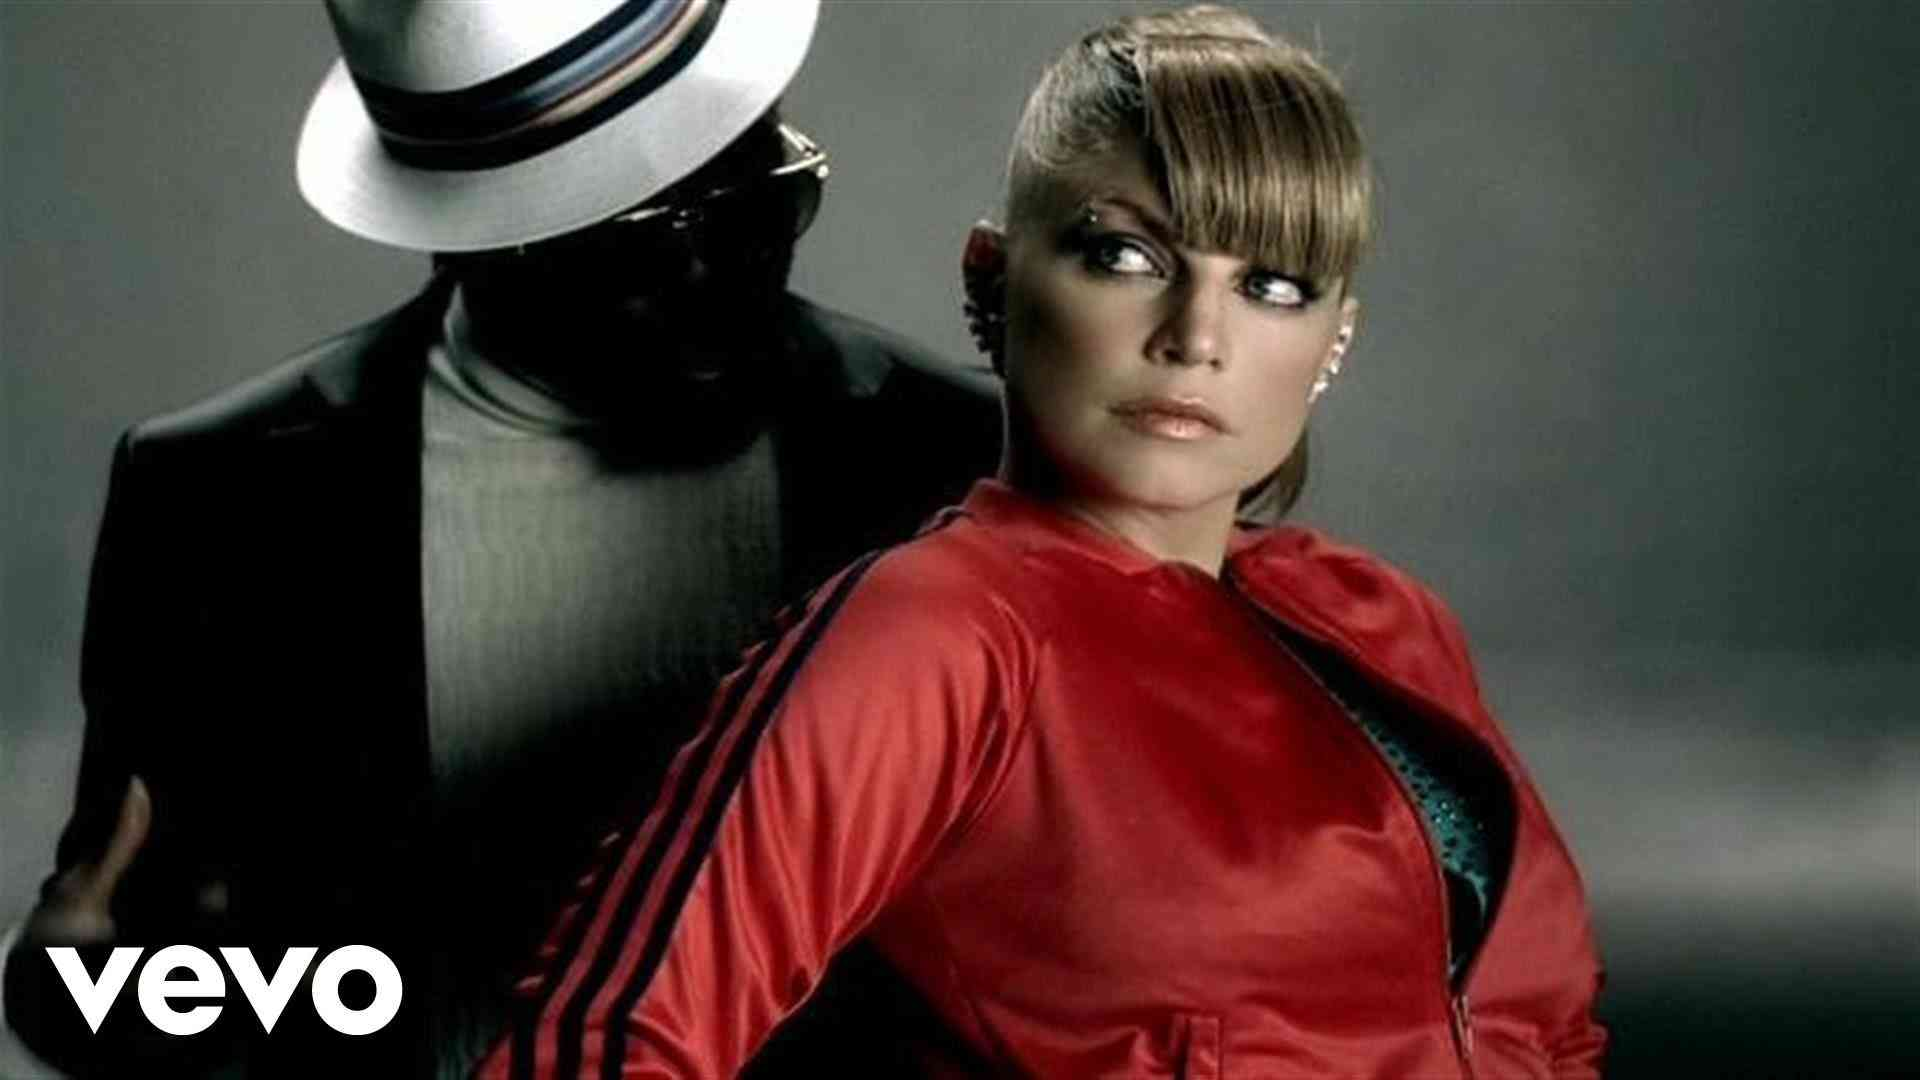 The Black Eyed Peas - My Humps - YouTube